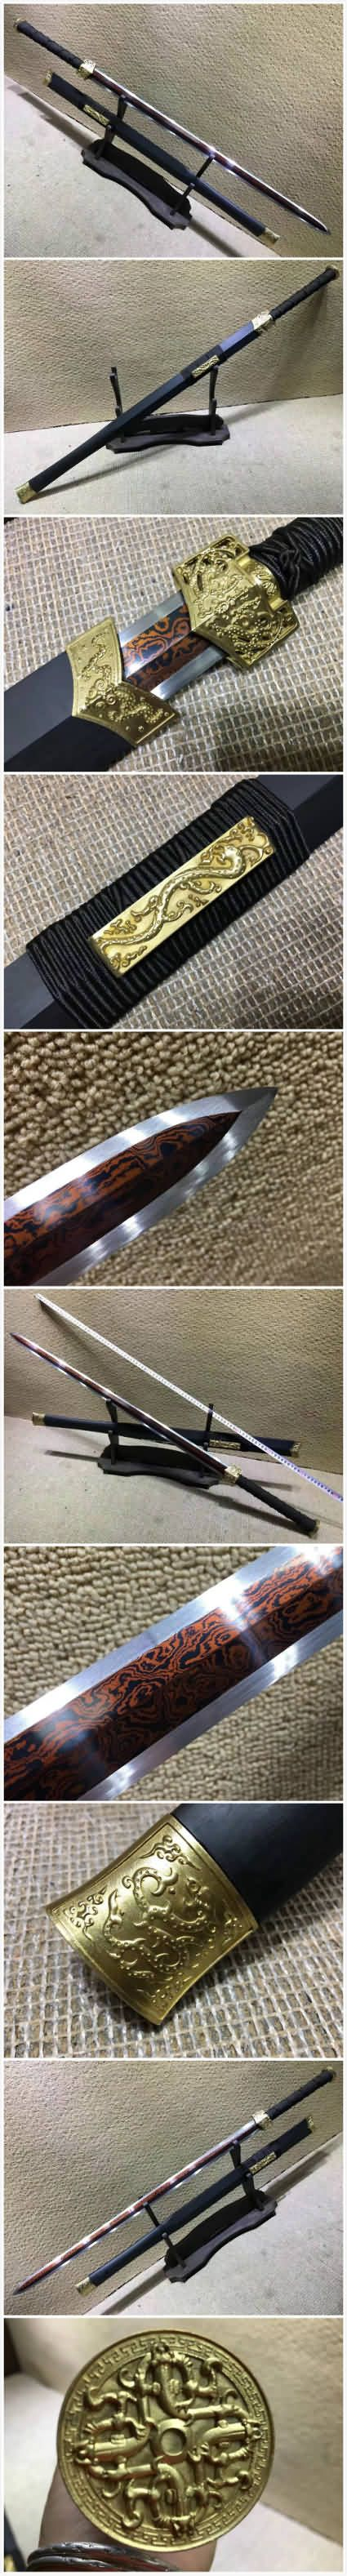 """Item Specification: Material:Damascus steel/Folded steel,Red-surface treatment; Sword Type:Hand Made Sword; Package weight:2KG; Overall Length:41""""/105cm; Blade Length:29""""/75CM; Scabbard:Black wood; Handle:Solid wood, wrapped a rope slip; Knife fitted:Brass fittings; Condition:Brand New; Origin:Longquan Zhejiang China; Accessories:Cotton sword bag. No wood stand."""